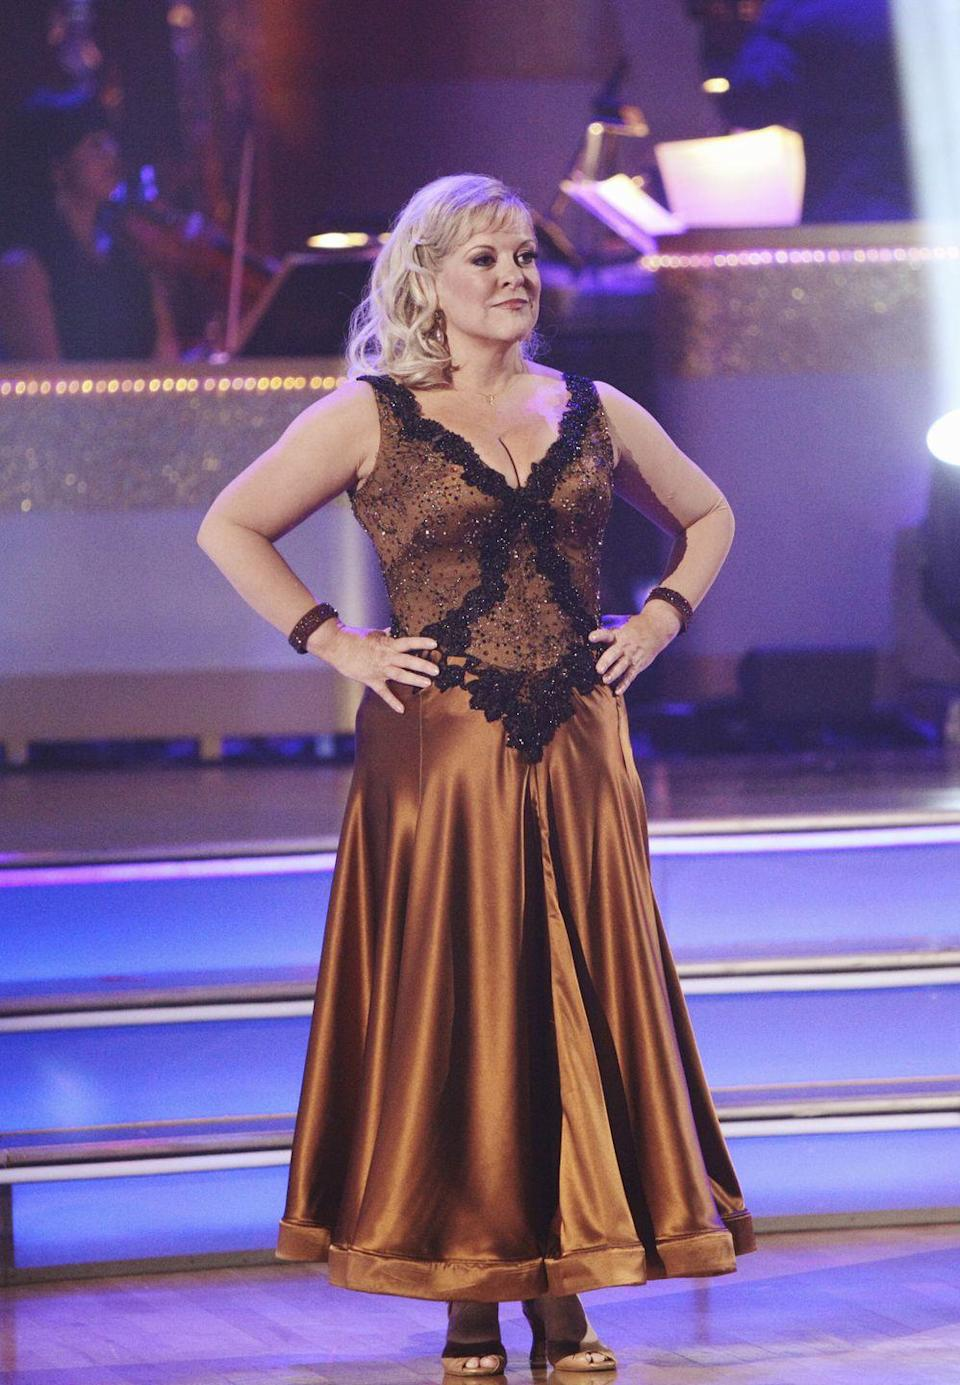 """<p>During the season 13 premiere, Nancy Grace's costume caught some attention. When receiving comments from the judges, Tristan MacManus noted that things were a bit...top heavy...and suggest the star suffered a wardrobe malfunction. However, Nancy stuck to her guns and later refuted there was a mishap, """"There may have been, as Tristan said, a little bit of jiggling, but there was absolutely not a wardrobe malfunction,"""" Nancy told <em><a href=""""https://www.usmagazine.com/entertainment/news/dwts-nancy-grace-there-was-no-nip-slip-just-a-little-bit-of-jiggling-2011279/"""" rel=""""nofollow noopener"""" target=""""_blank"""" data-ylk=""""slk:US Weekly"""" class=""""link rapid-noclick-resp"""">US Weekly</a>.</em></p>"""